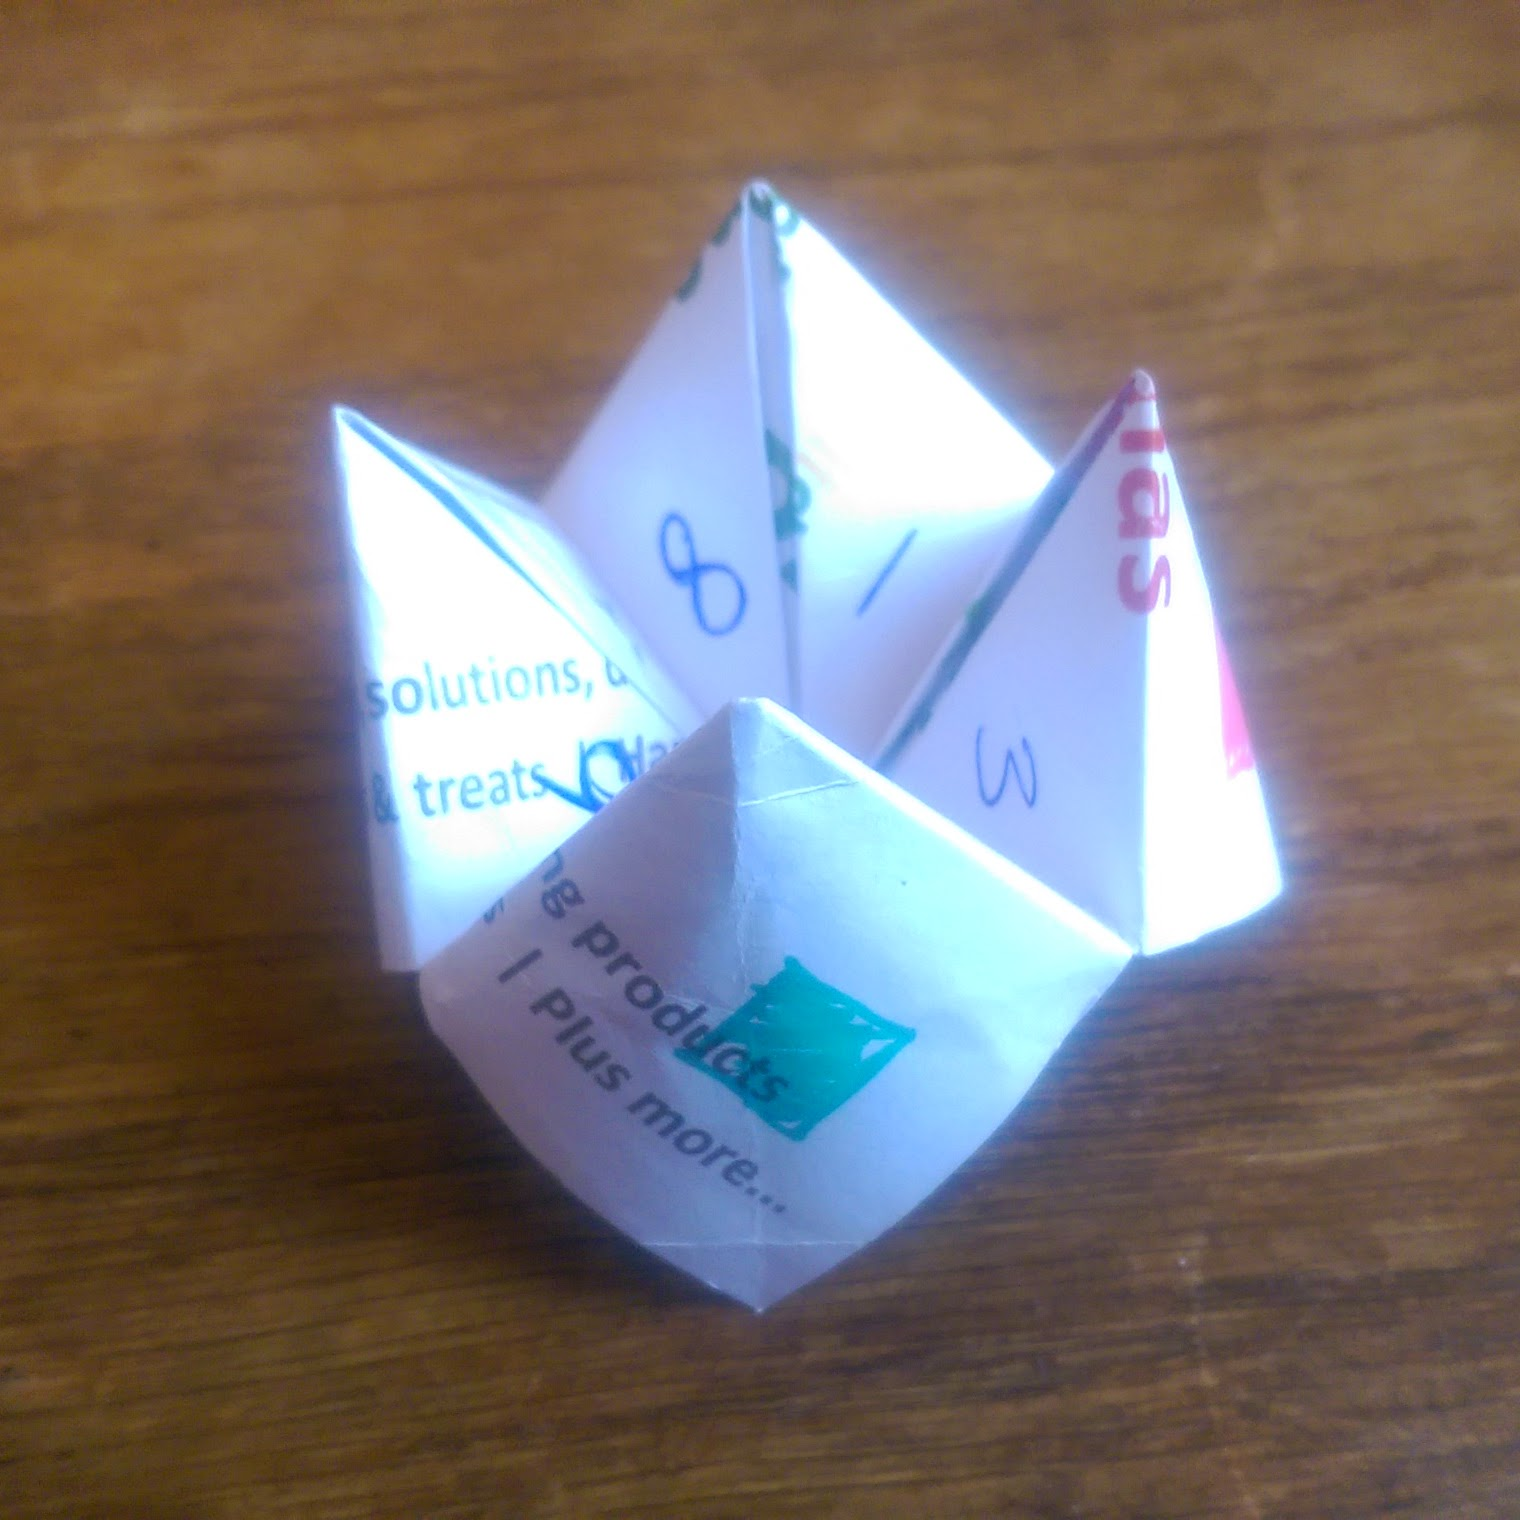 Sustainable Christmas pop-up shop leaflet transformed into a chatterbox